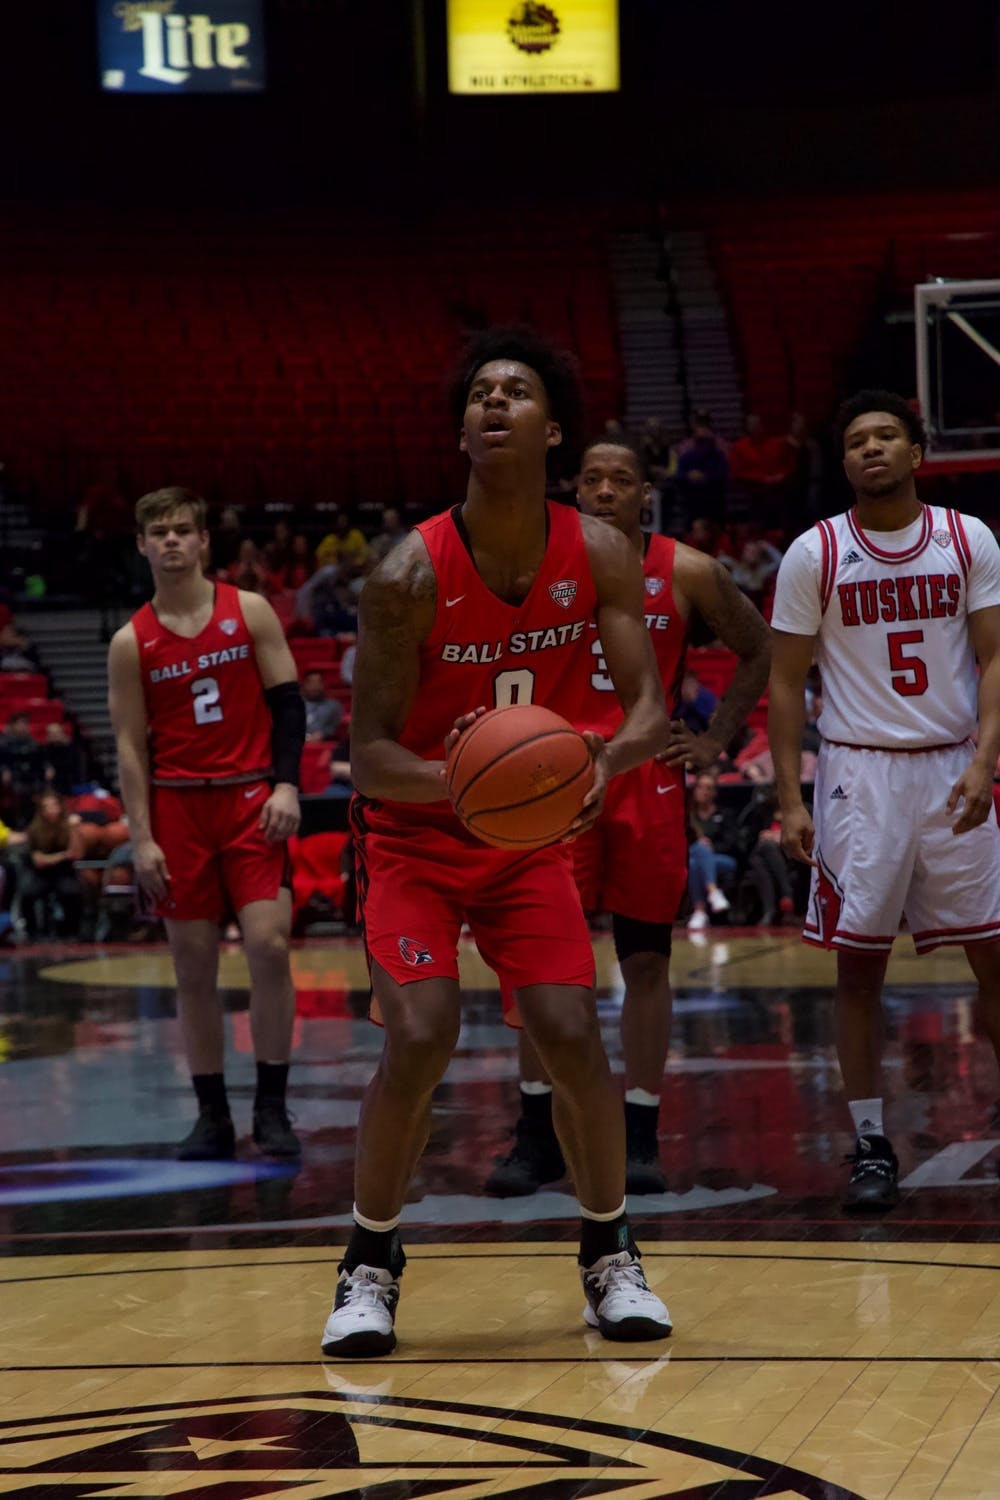 Redshirt sophomore guard Miryne Thomas prepares to shoot a free-throw in a game against Northern Illinois on March 6 at the Convocation Center. The Cardinals defeated the Huskies 75-54. Jack Williams, DN